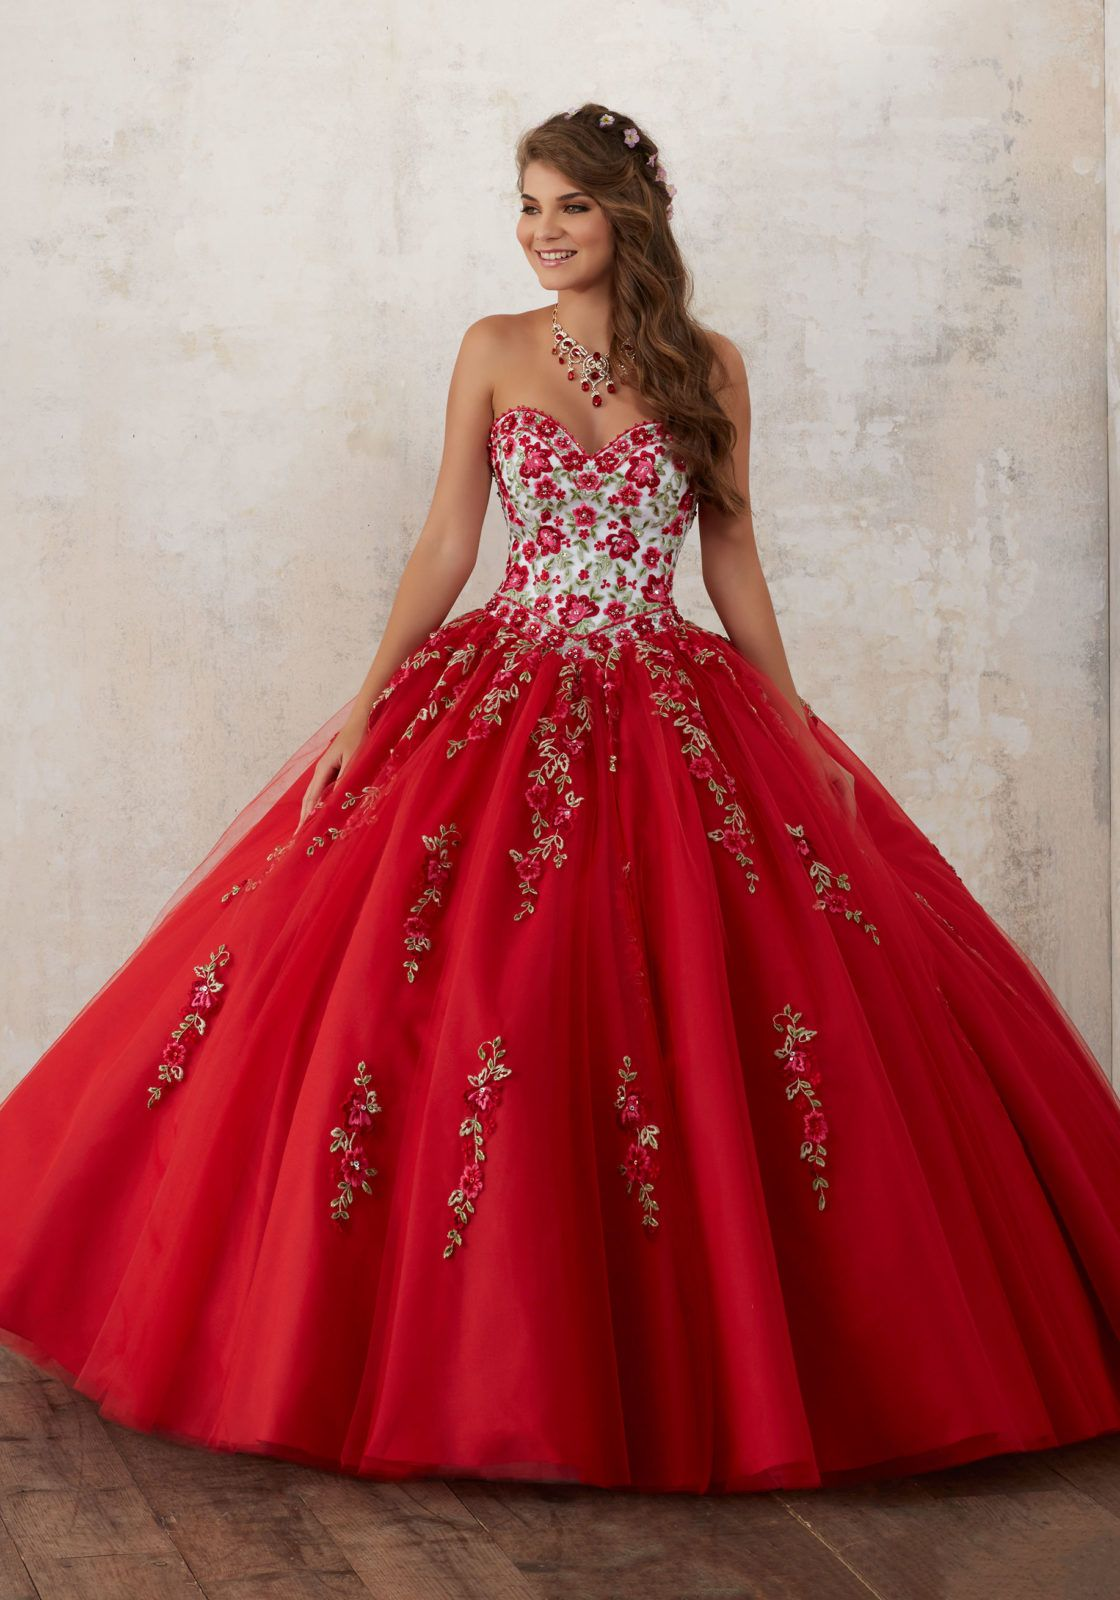 5f182cba910 Detachable Quinceanera Dresses You  8217 ll Love